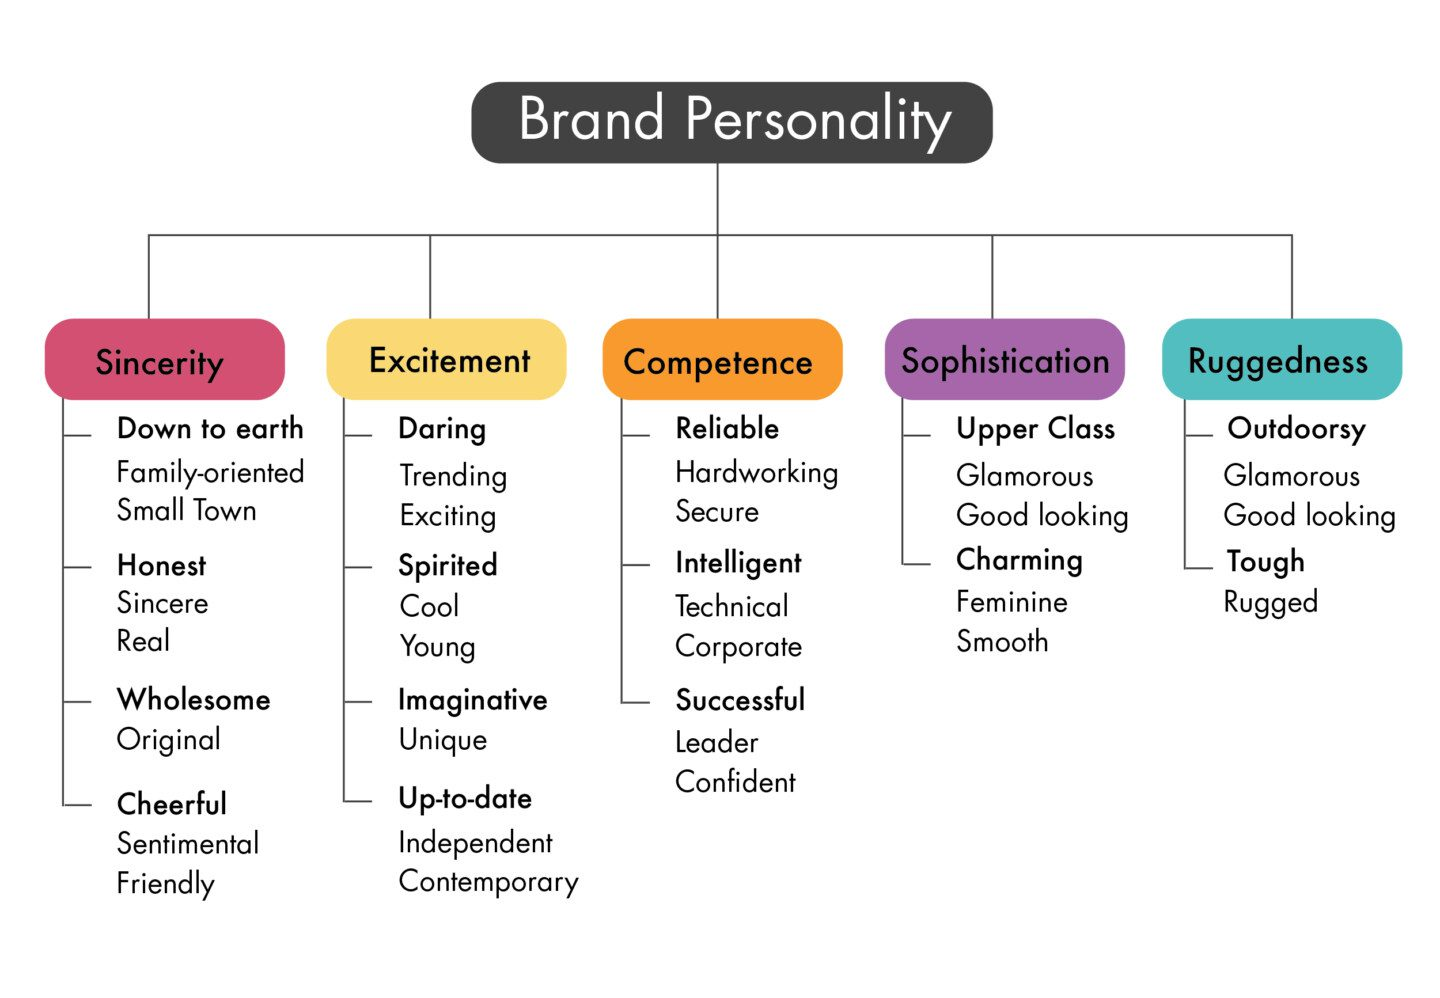 aaker's brand personality framework